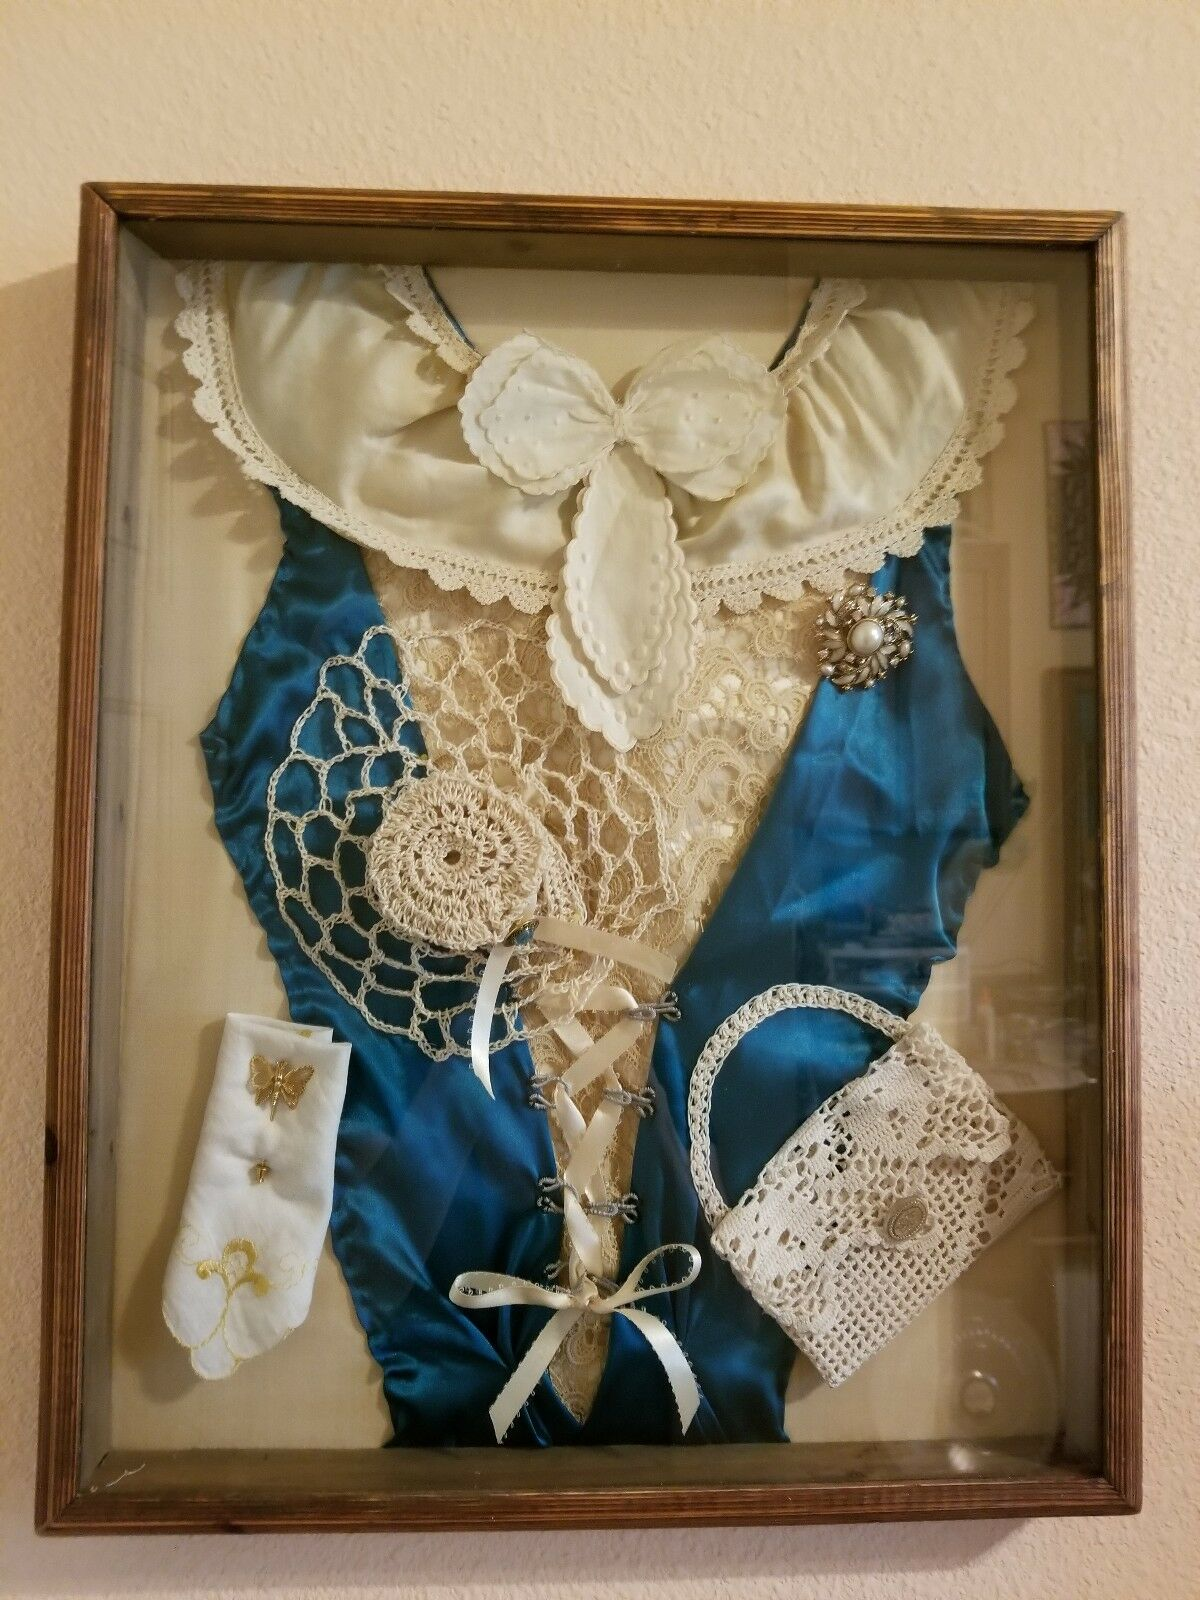 VINTAGE SHADOW BOX FRAMED ART Victorian Dress and Vintage Broach